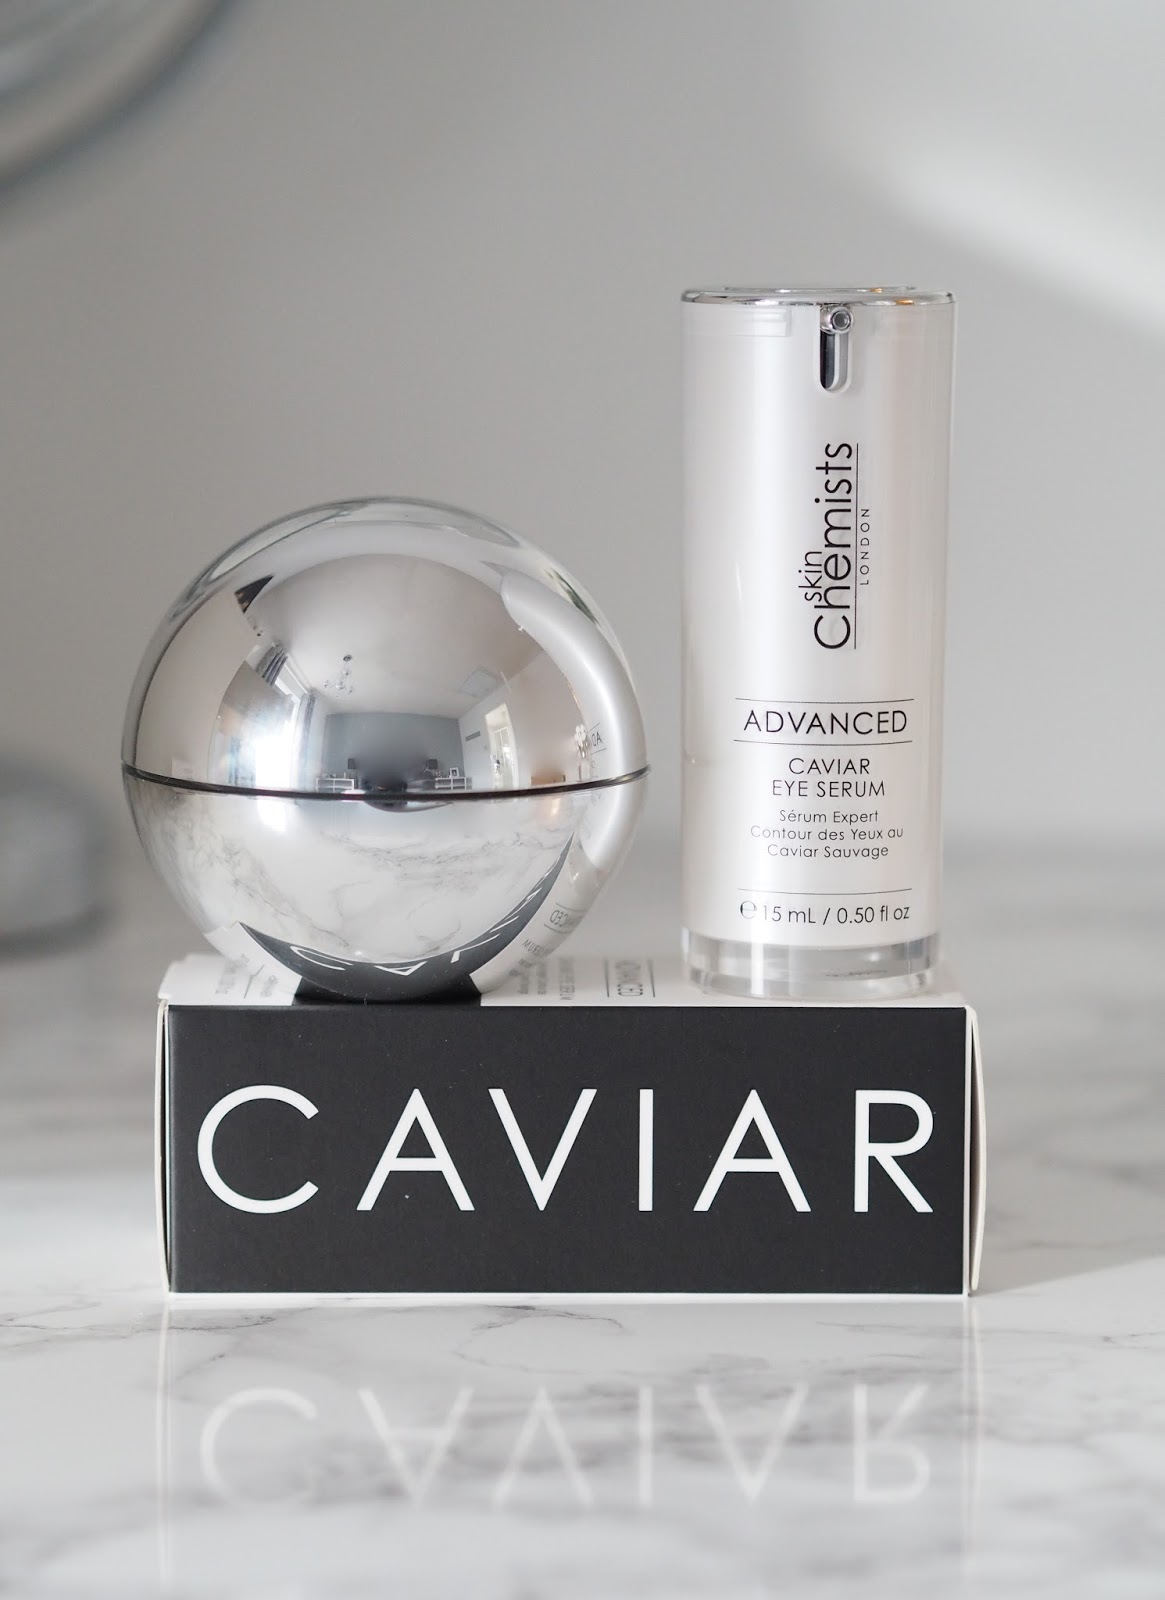 SkinChemists Advanced Caviar range anti-ageing Pricelesslife Life of Mine Over 40 lifestyle blog